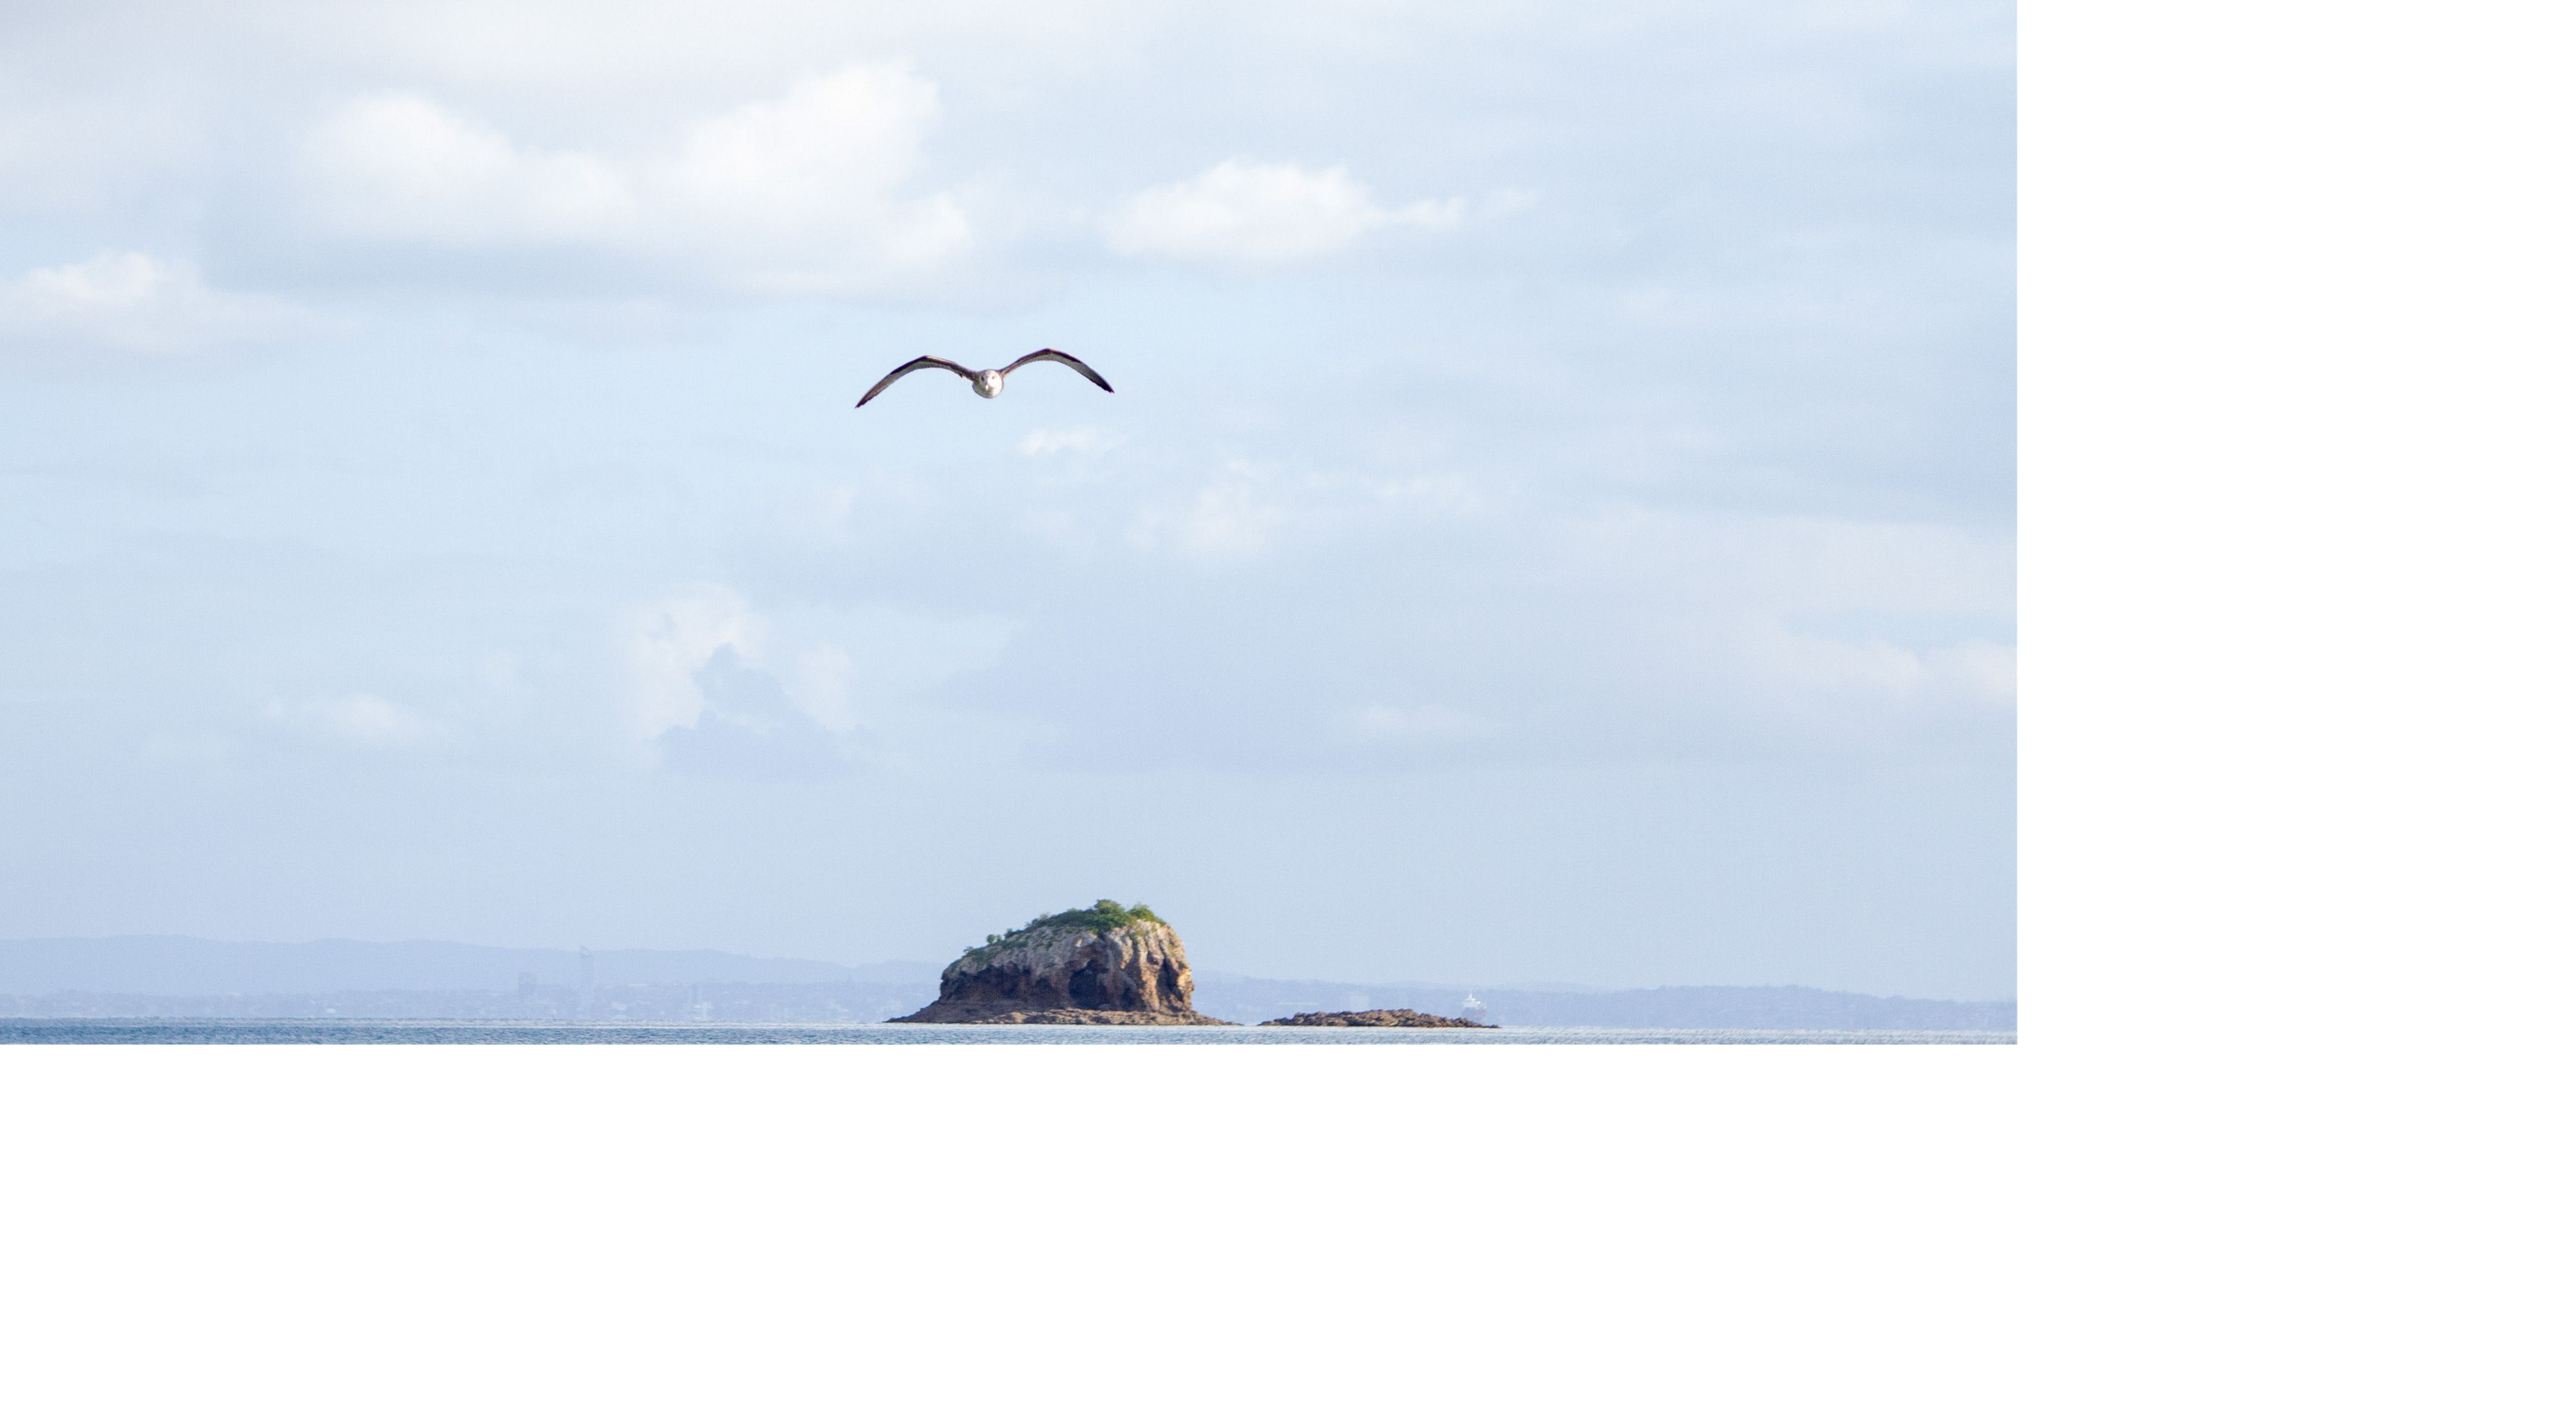 A seabird glides on air currents as it flies between islands in the Hauraki Guilf, Aotearoa New Zealand